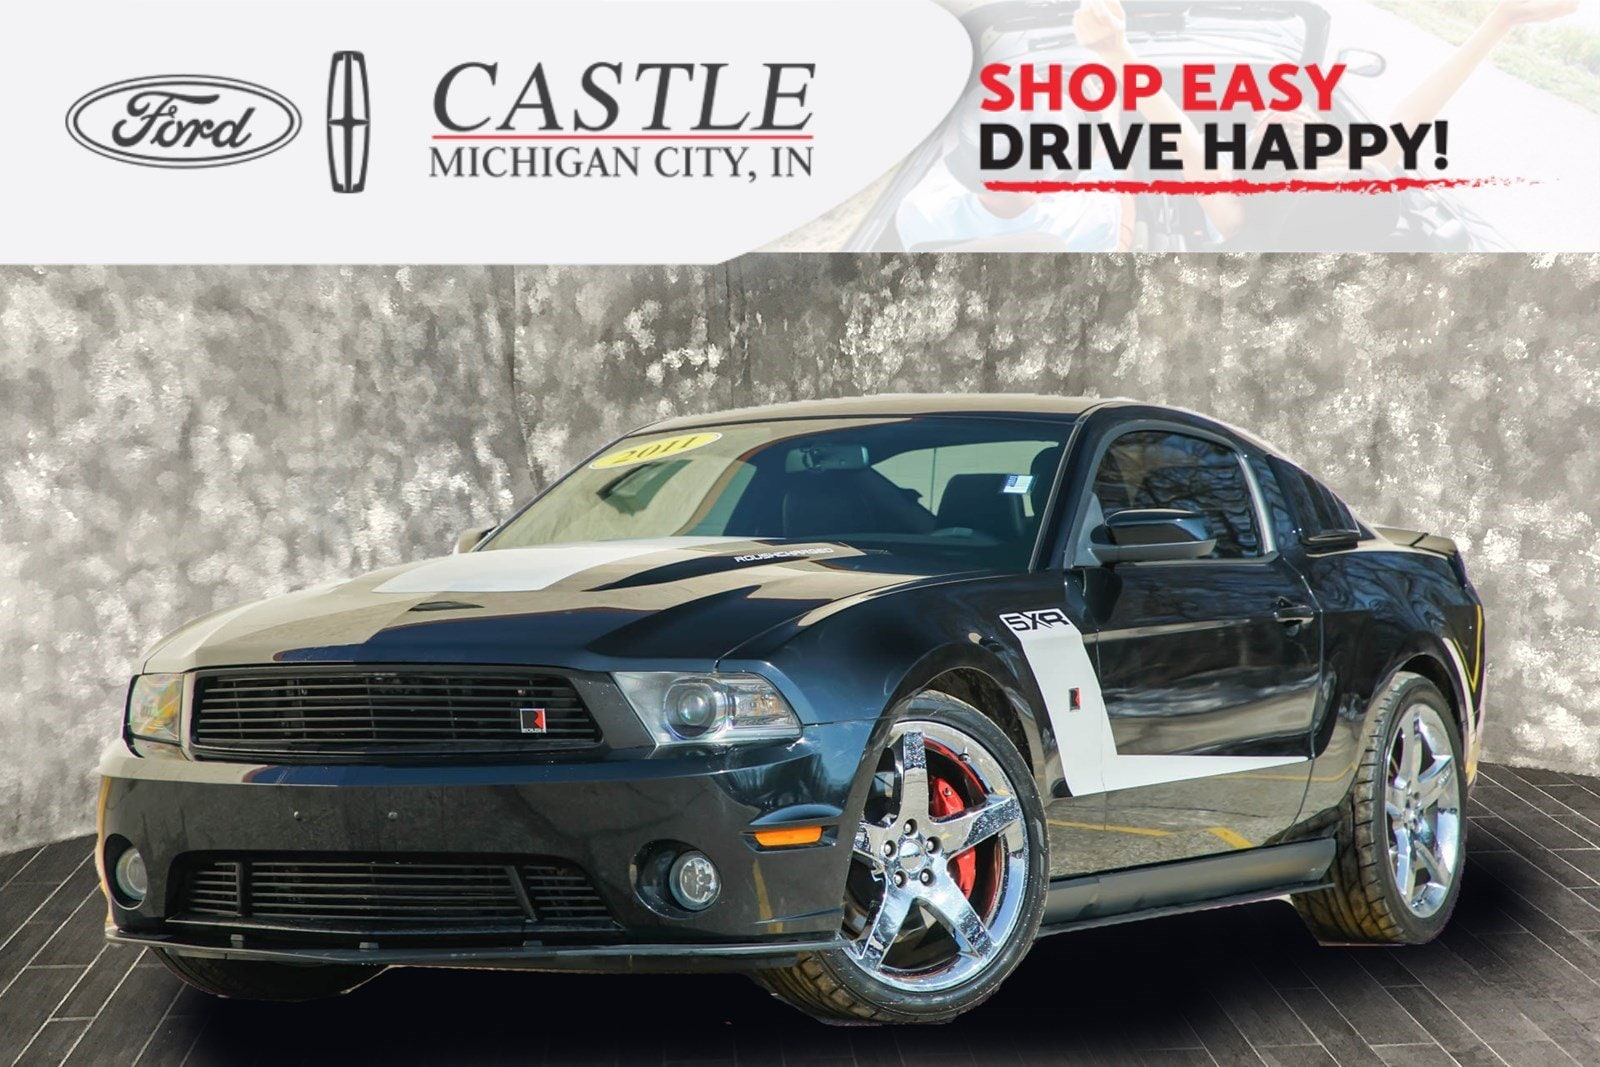 2011 Ford Mustang GT Premium Coupe